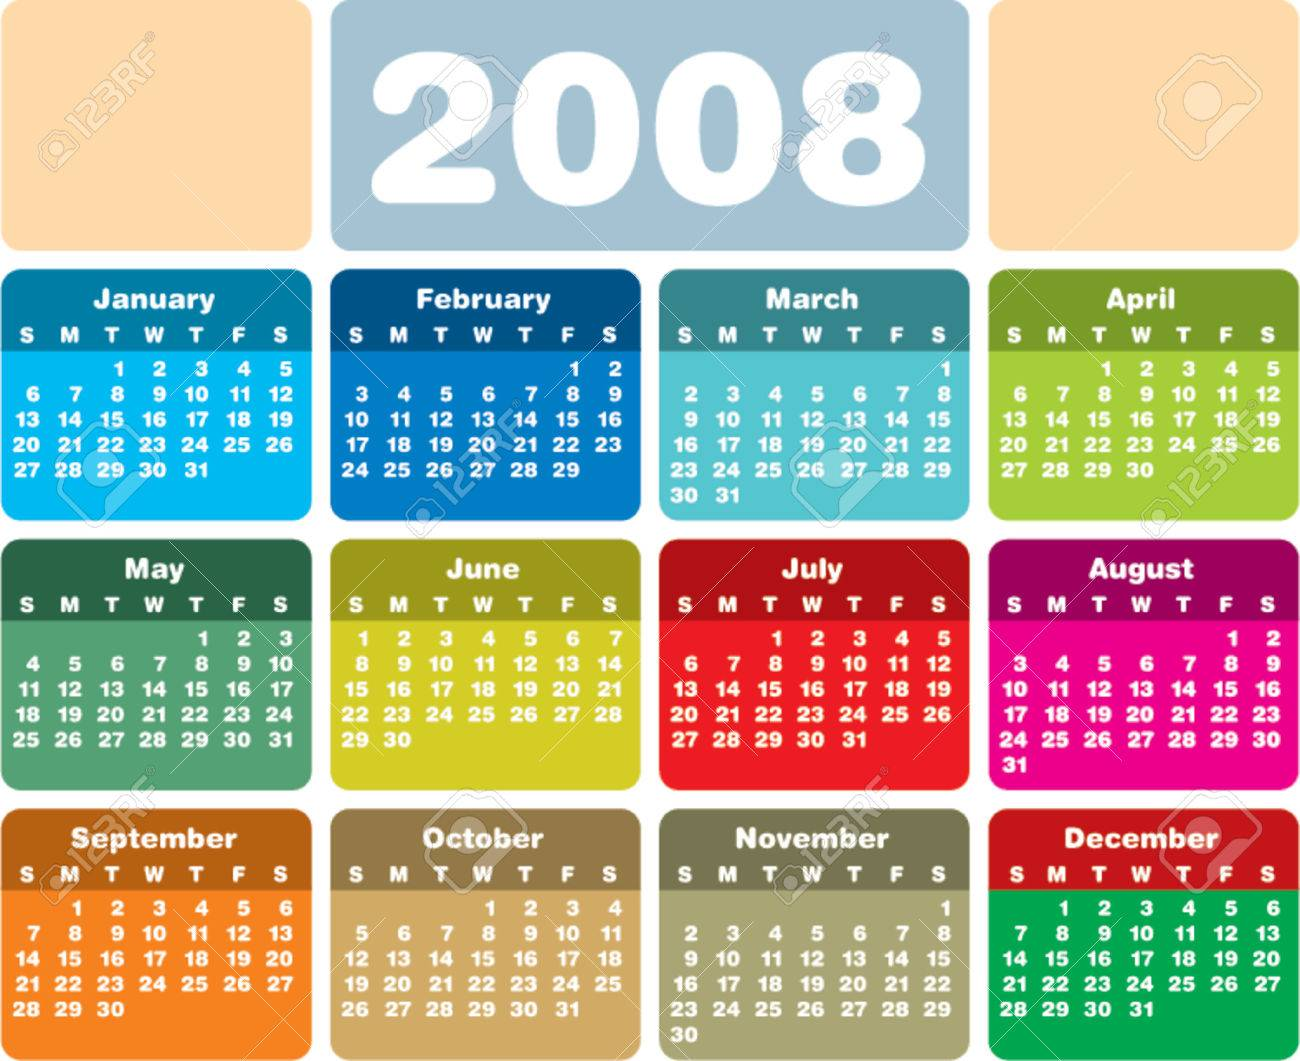 Colorful 2008 Calendar Royalty Free Cliparts Vectors And Stock